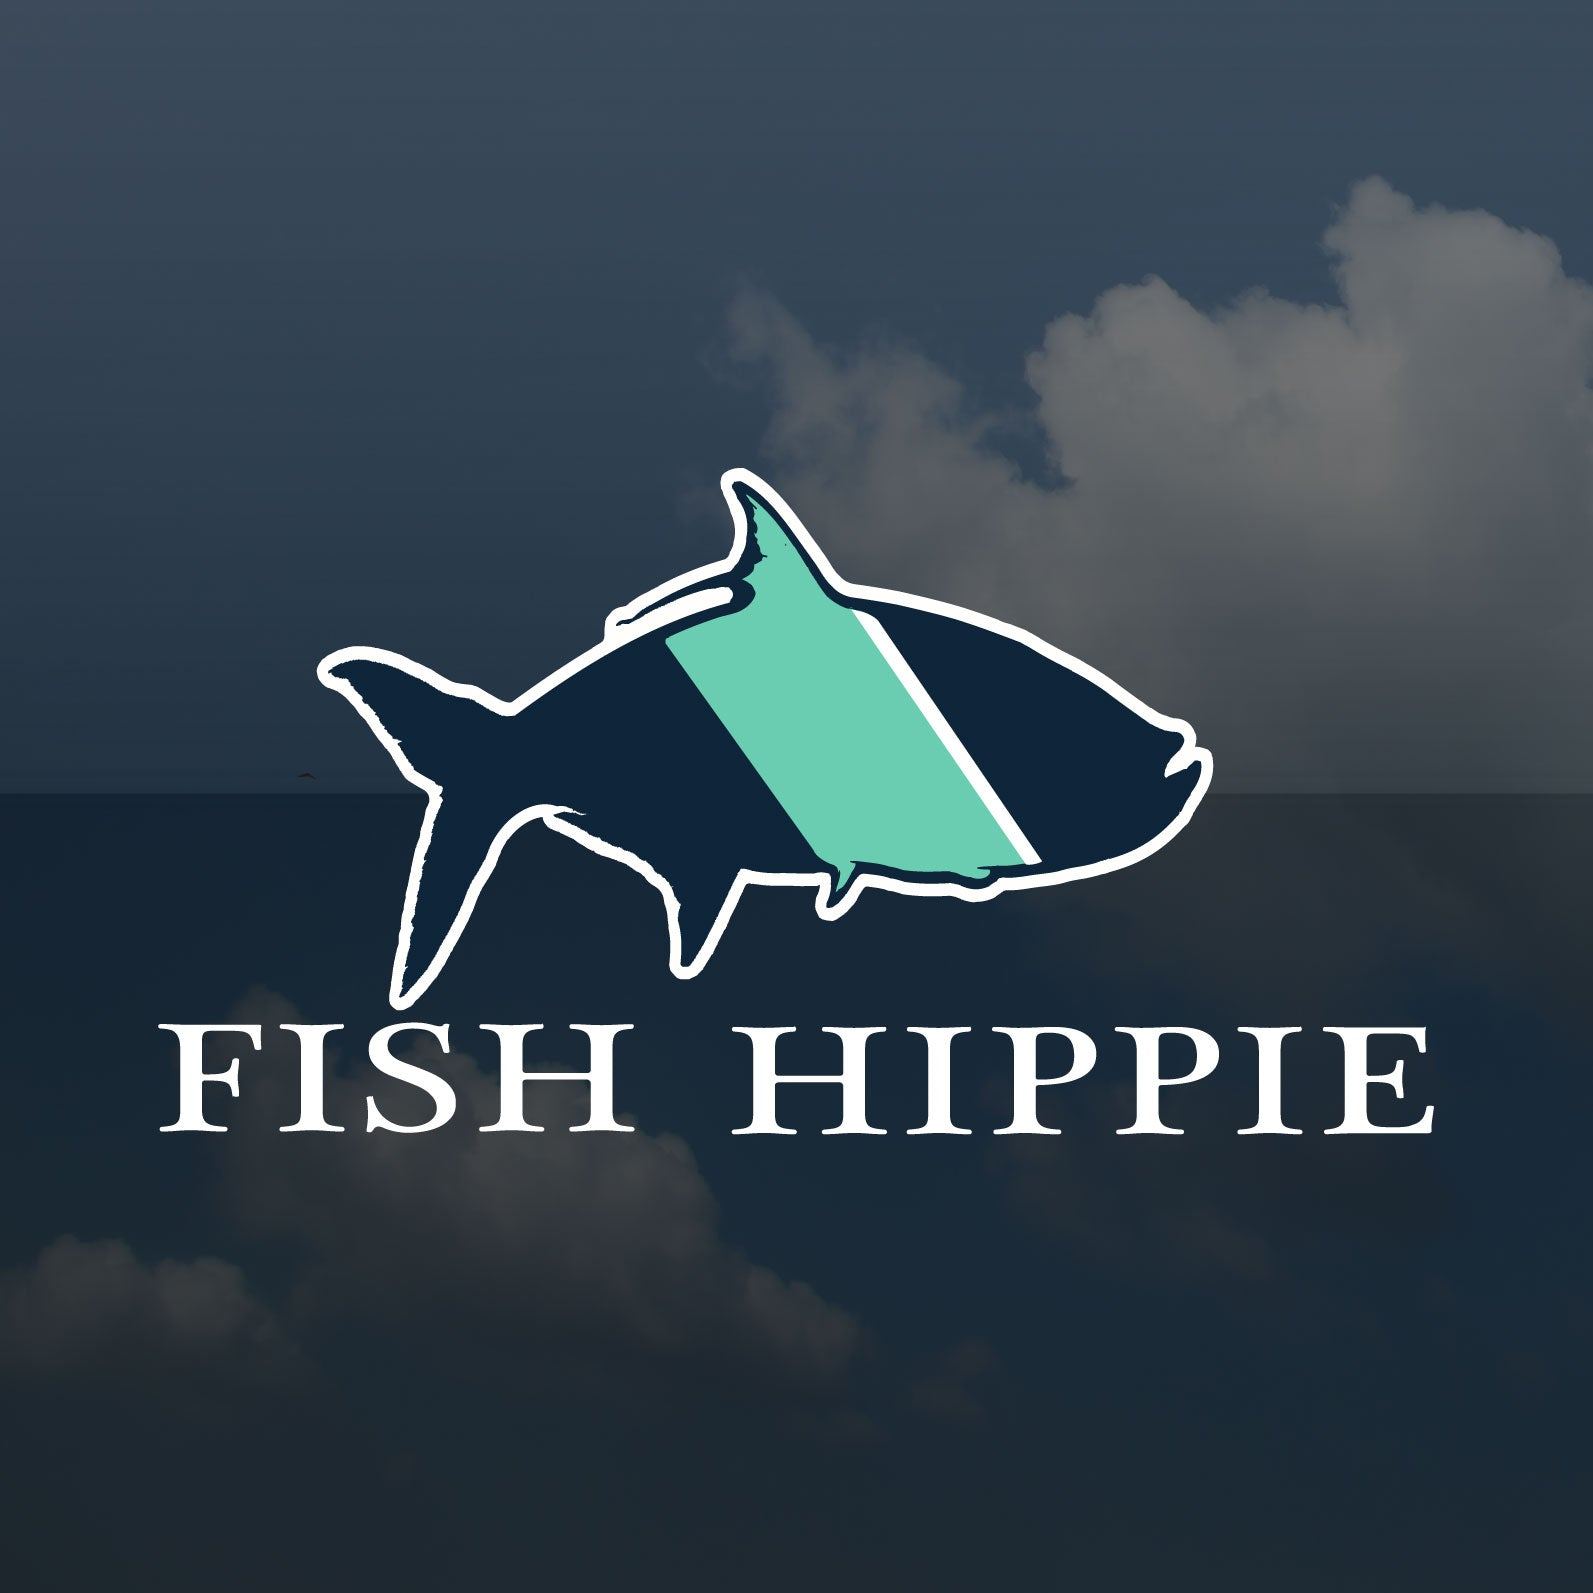 Fish Hippie Sticker Die-Cut Window Sticker